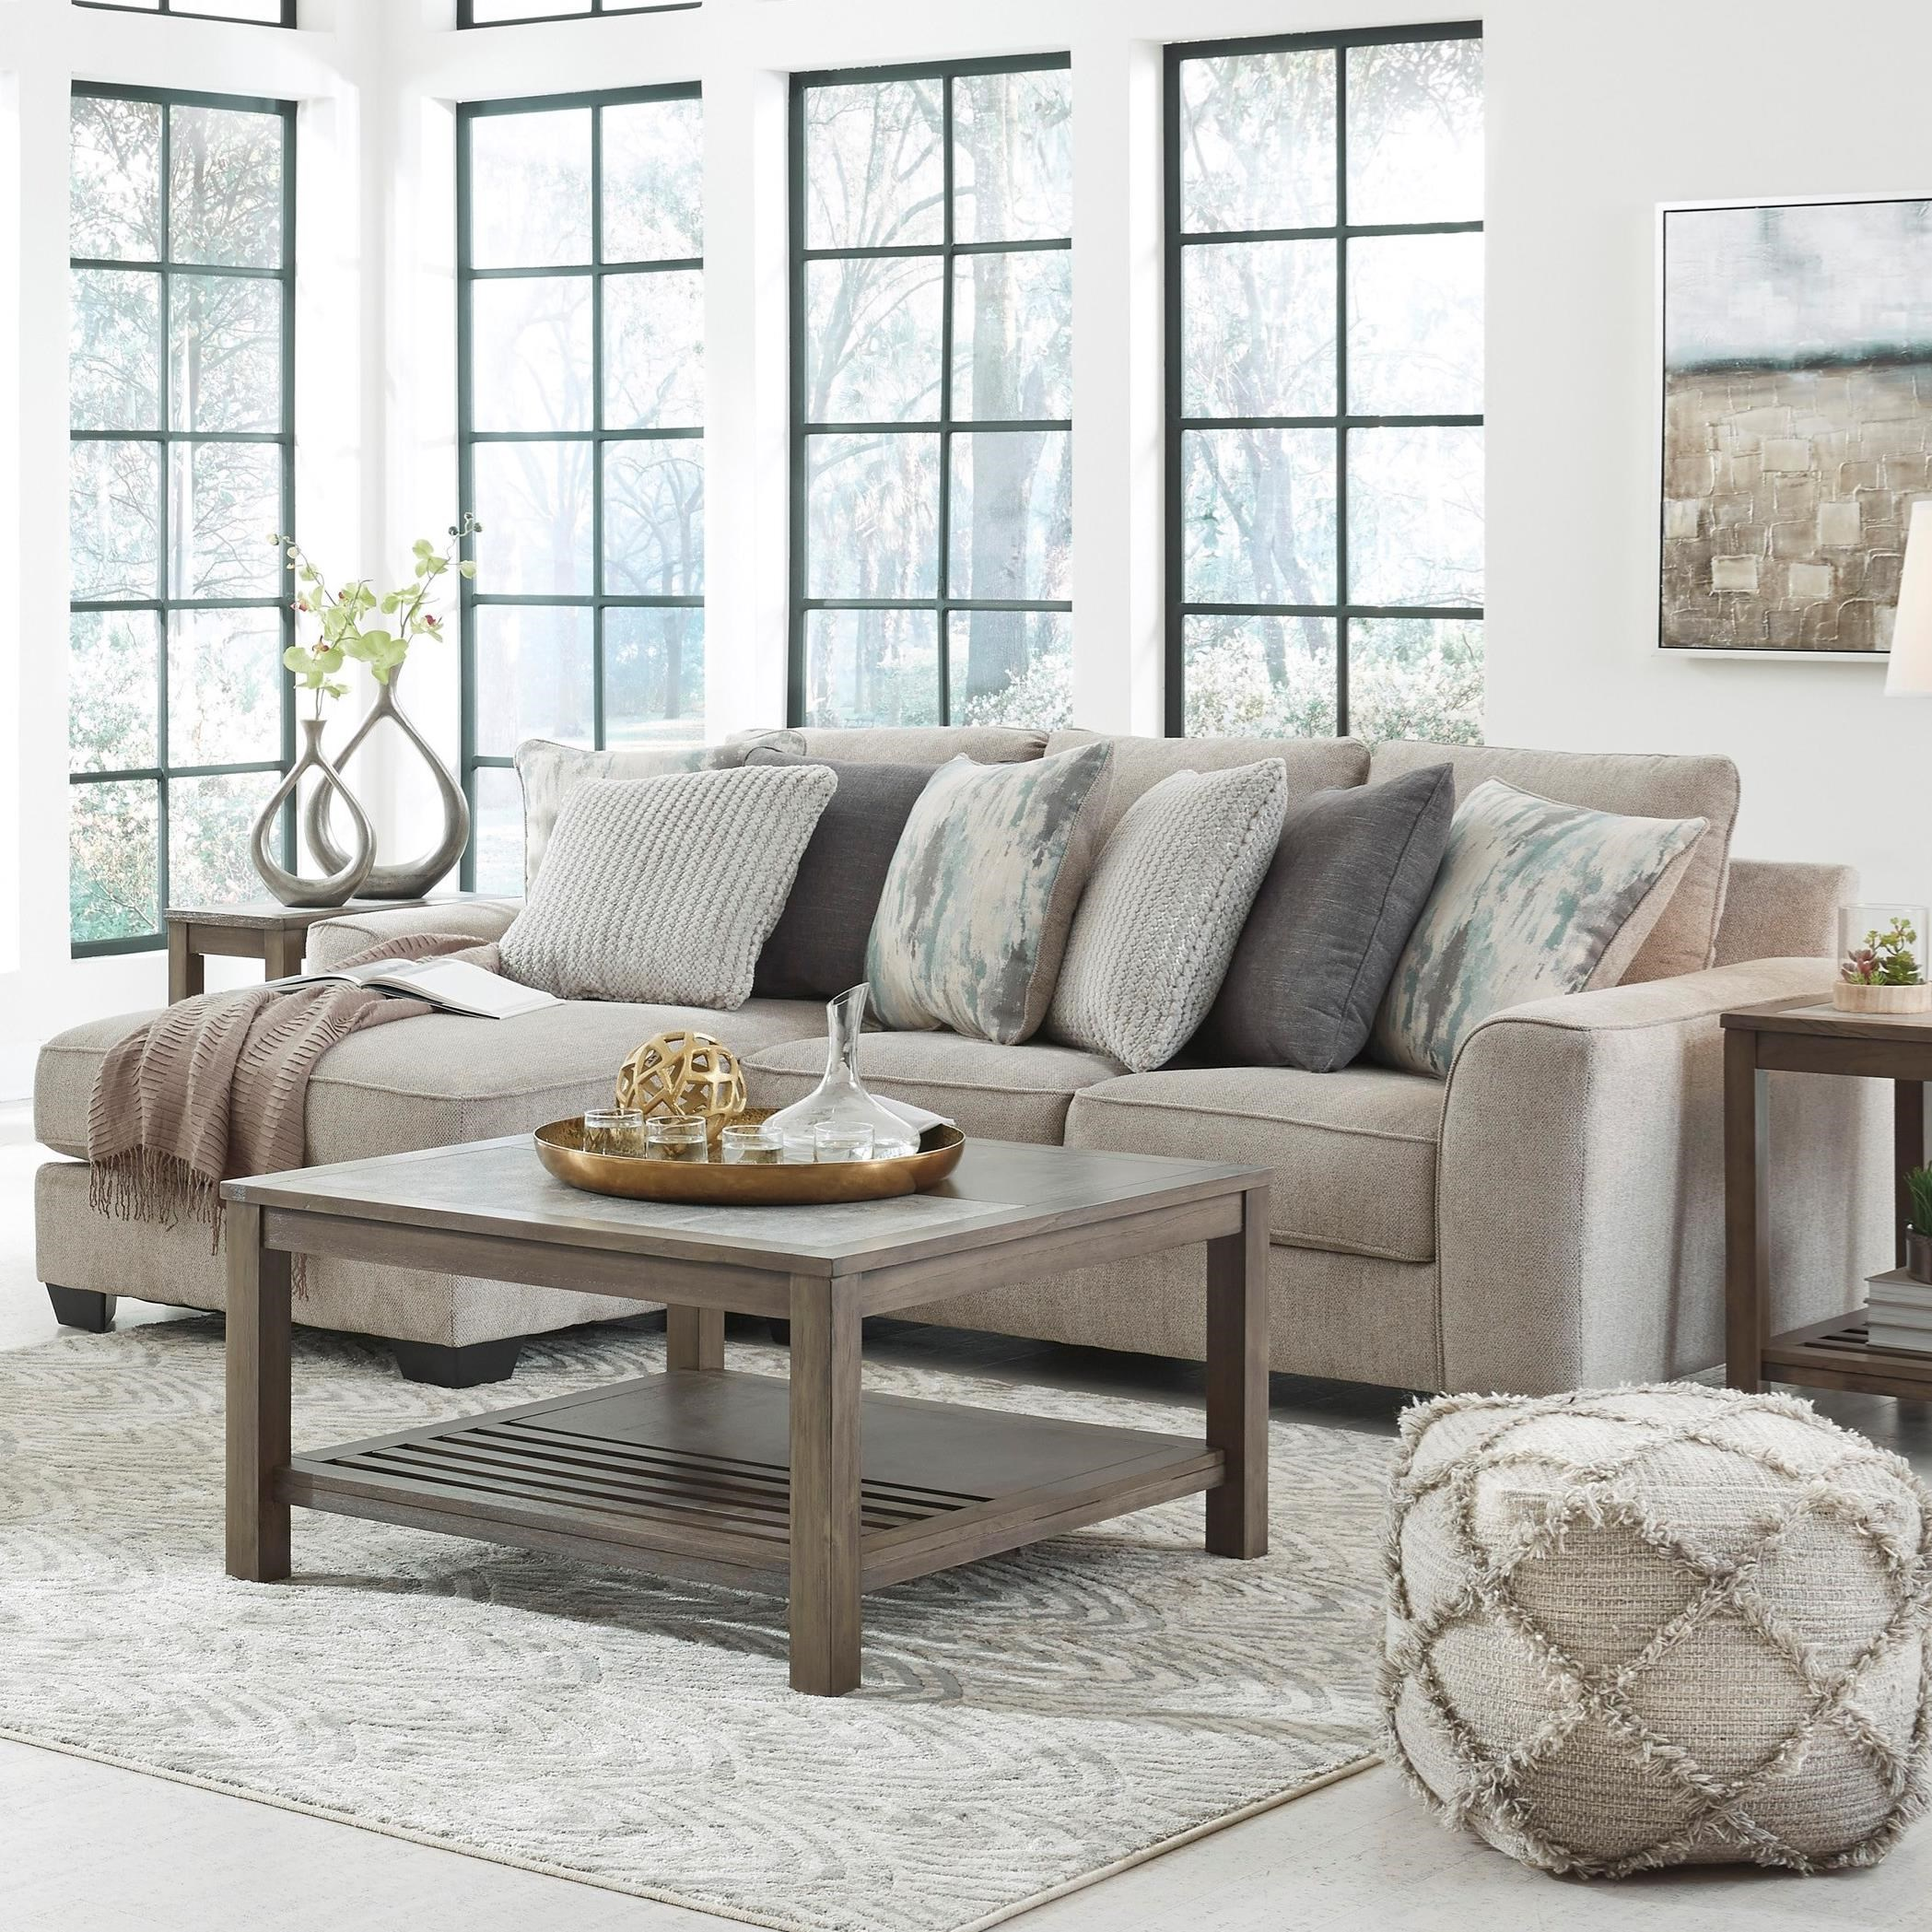 Ardsley 2-Piece Sectional with Left Chaise by Benchcraft at Catalog Outlet